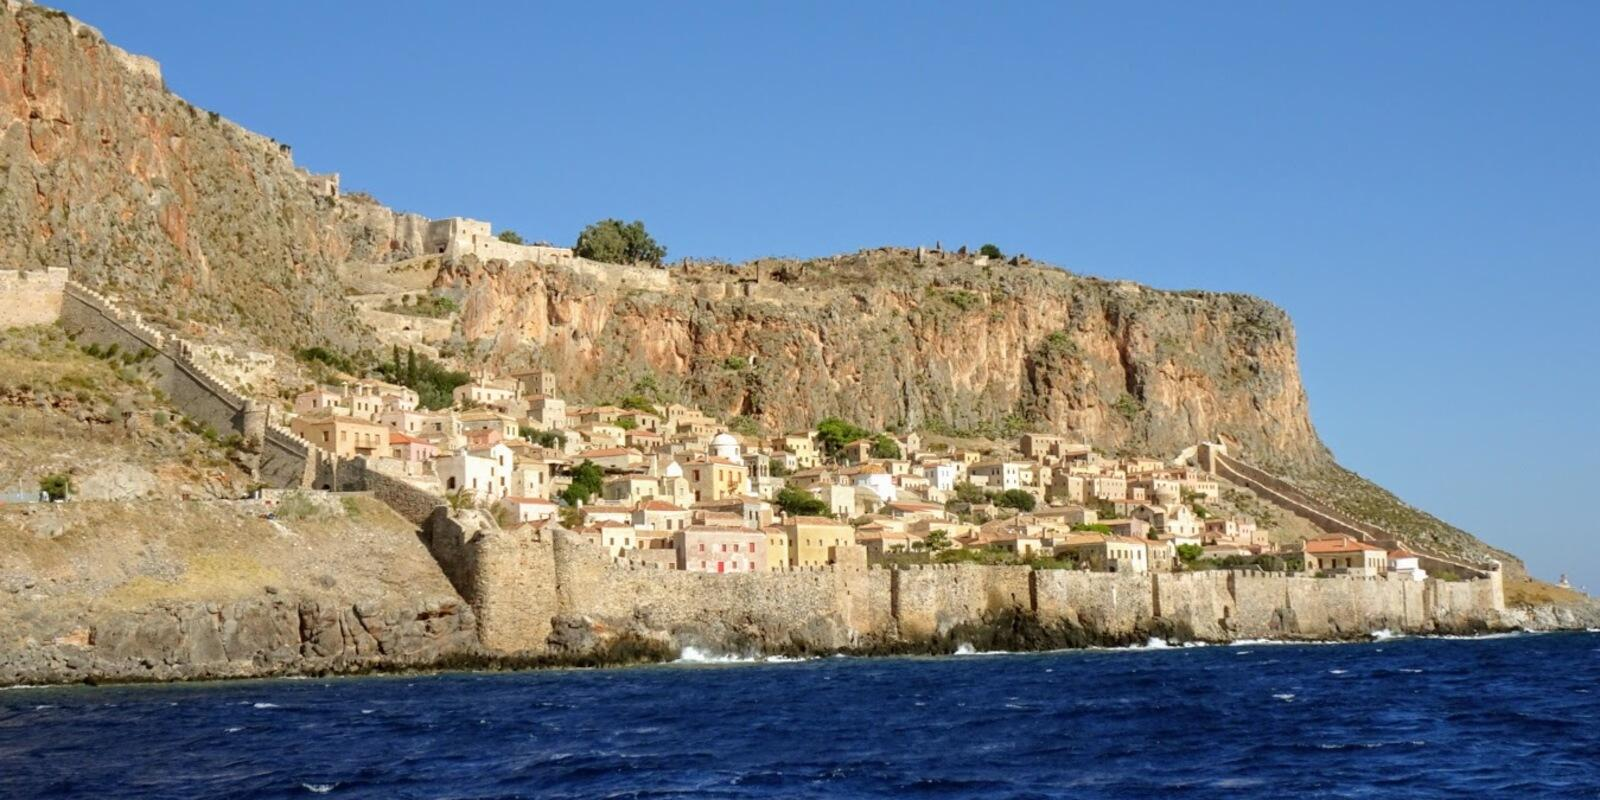 The best holiday is on a sailing boat from the Cyclades to Kefalonia